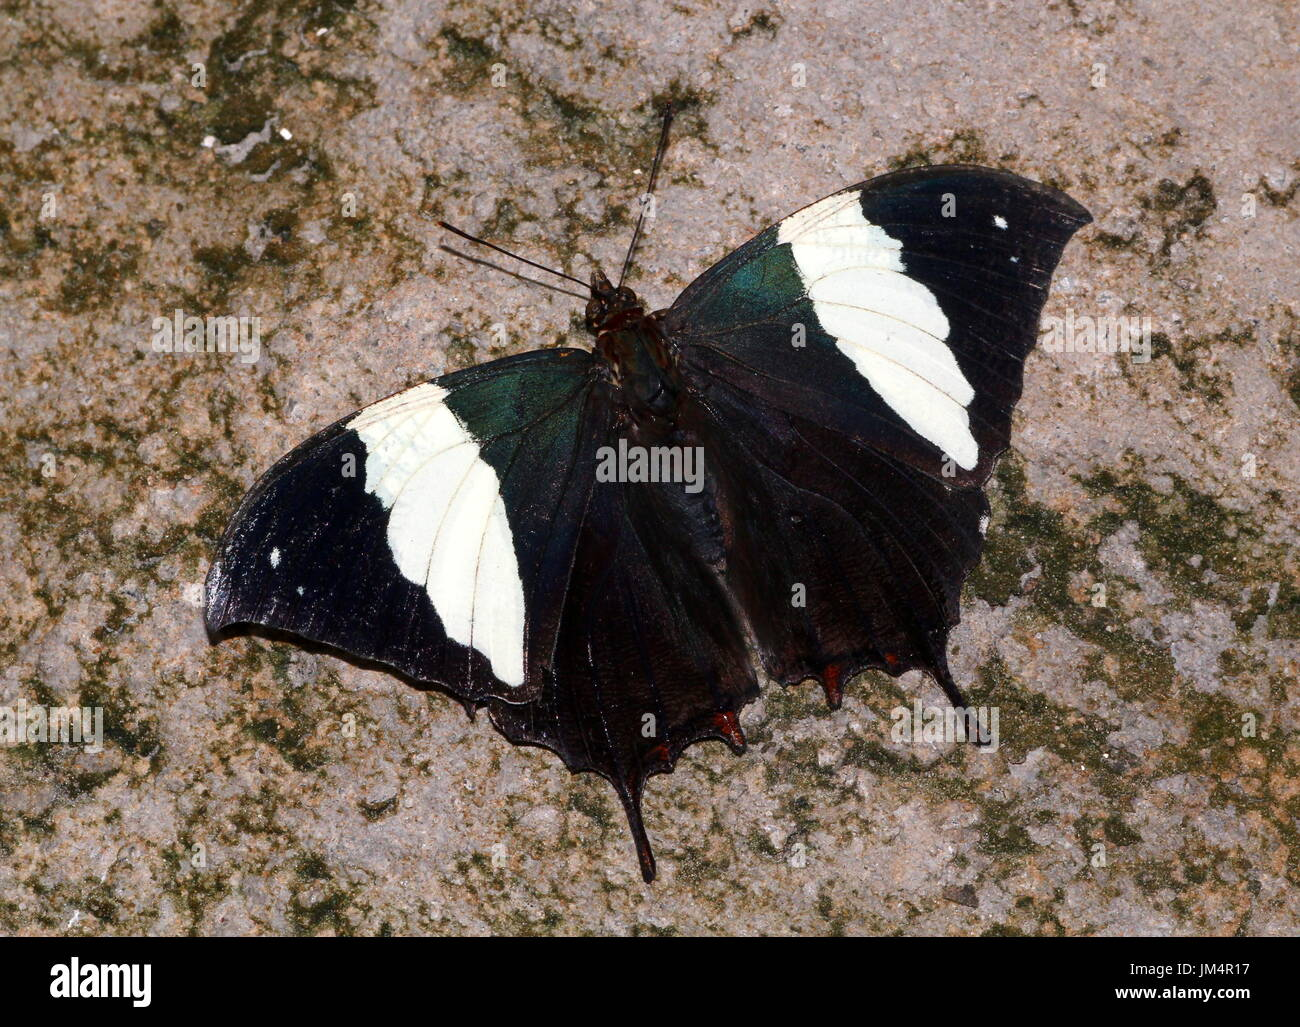 Central / South American Silver studded Leafwing Butterfly (Hypna clytemnestra), dorsal view.  A.k.a. Jazzy Leafwing or Marbled Leafwing. Stock Photo